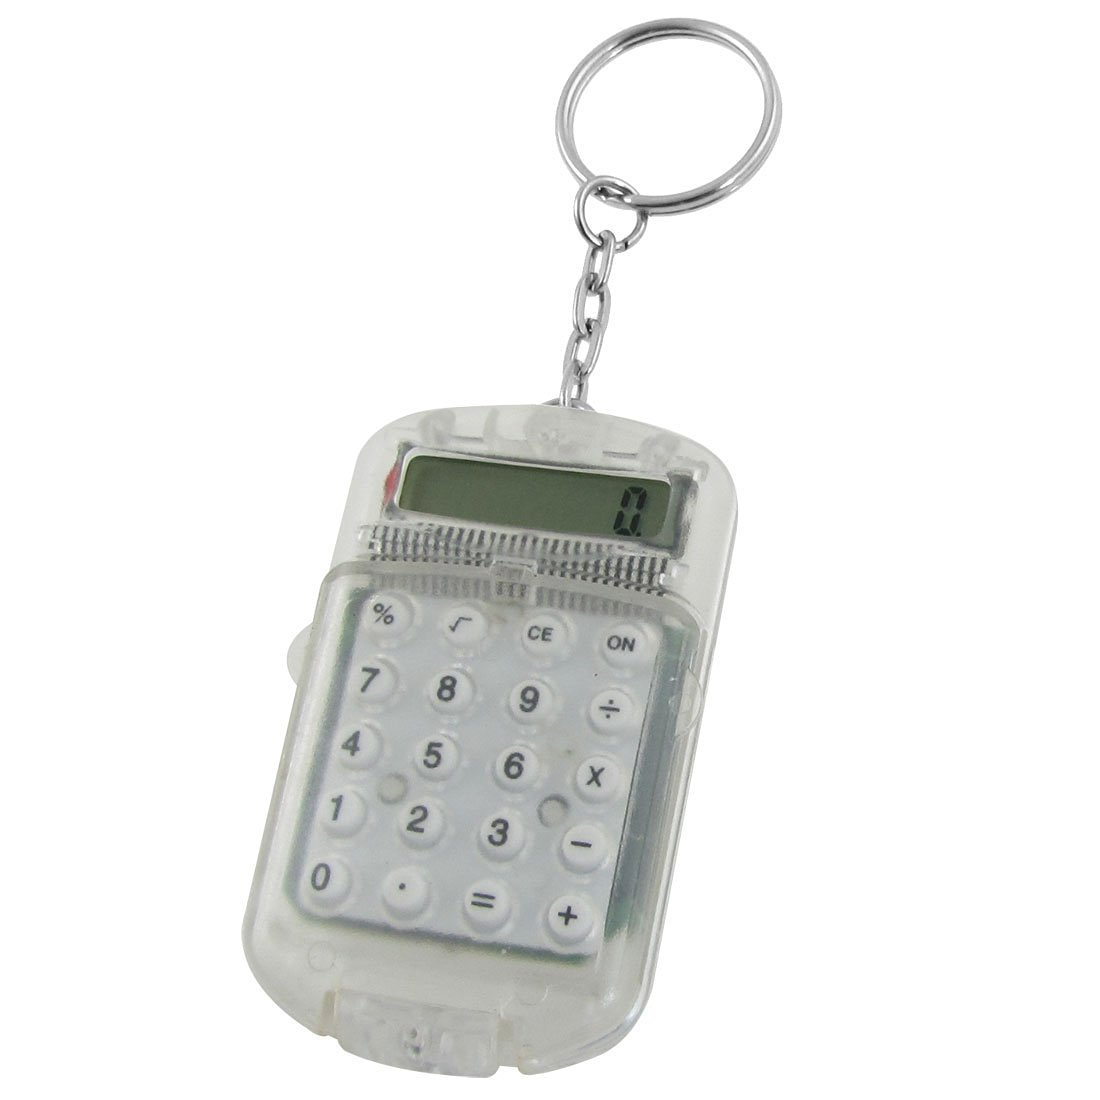 SODIAL(R) Clear Plastic Casing 8 Digits Electronic Mini Calculator w Keychain